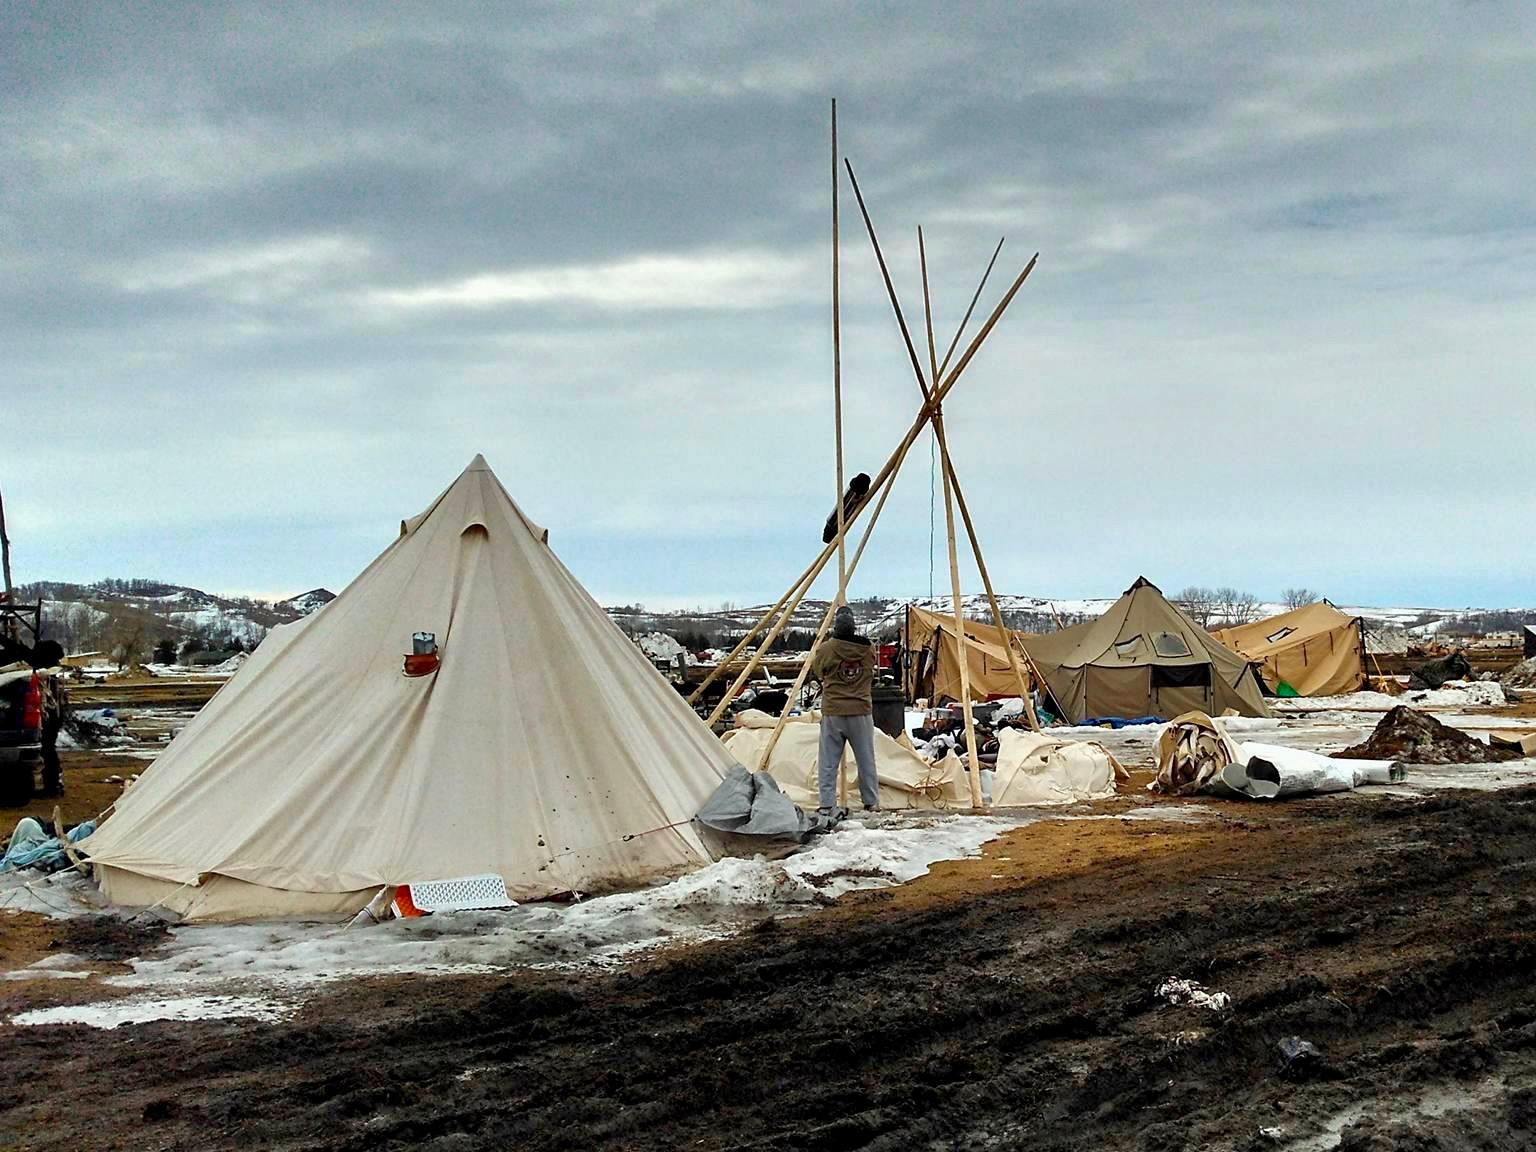 Peter d'Errico: Indian Country's 'trustee' isn't trustworthy anymore